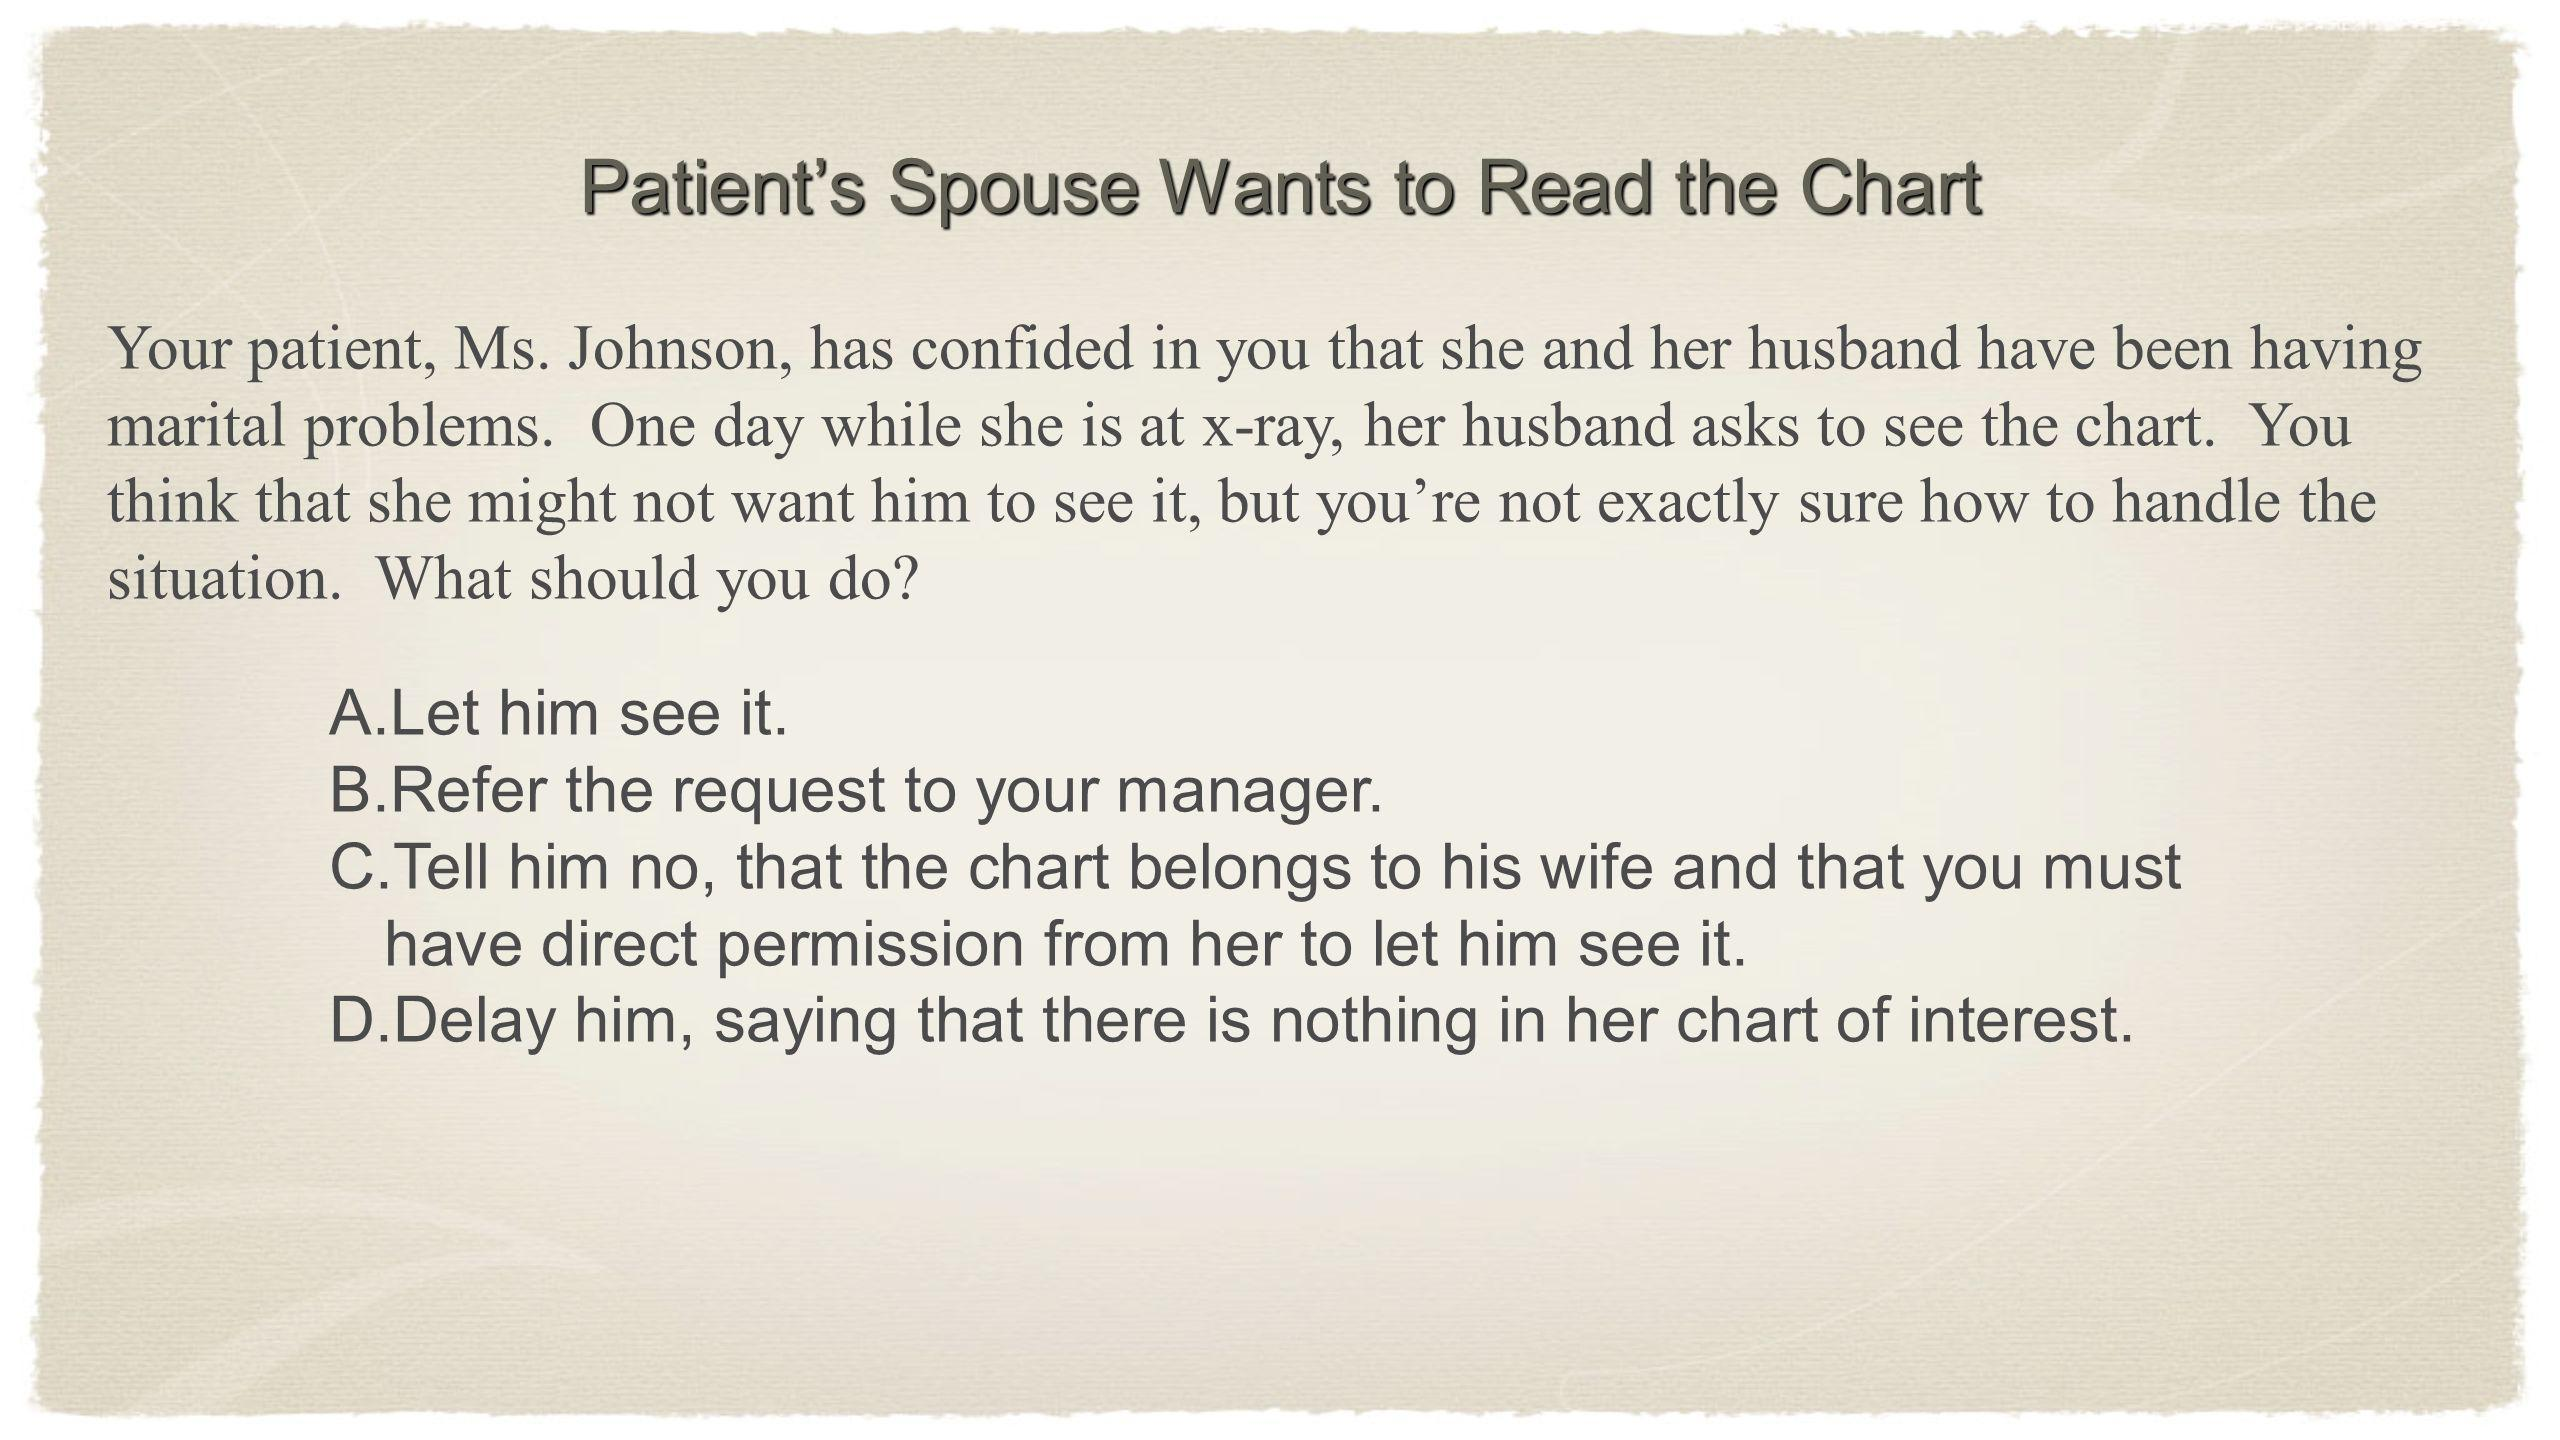 Your patient, Ms. Johnson, has confided in you that she and her husband have been having marital problems. One day while she is at x-ray, her husband